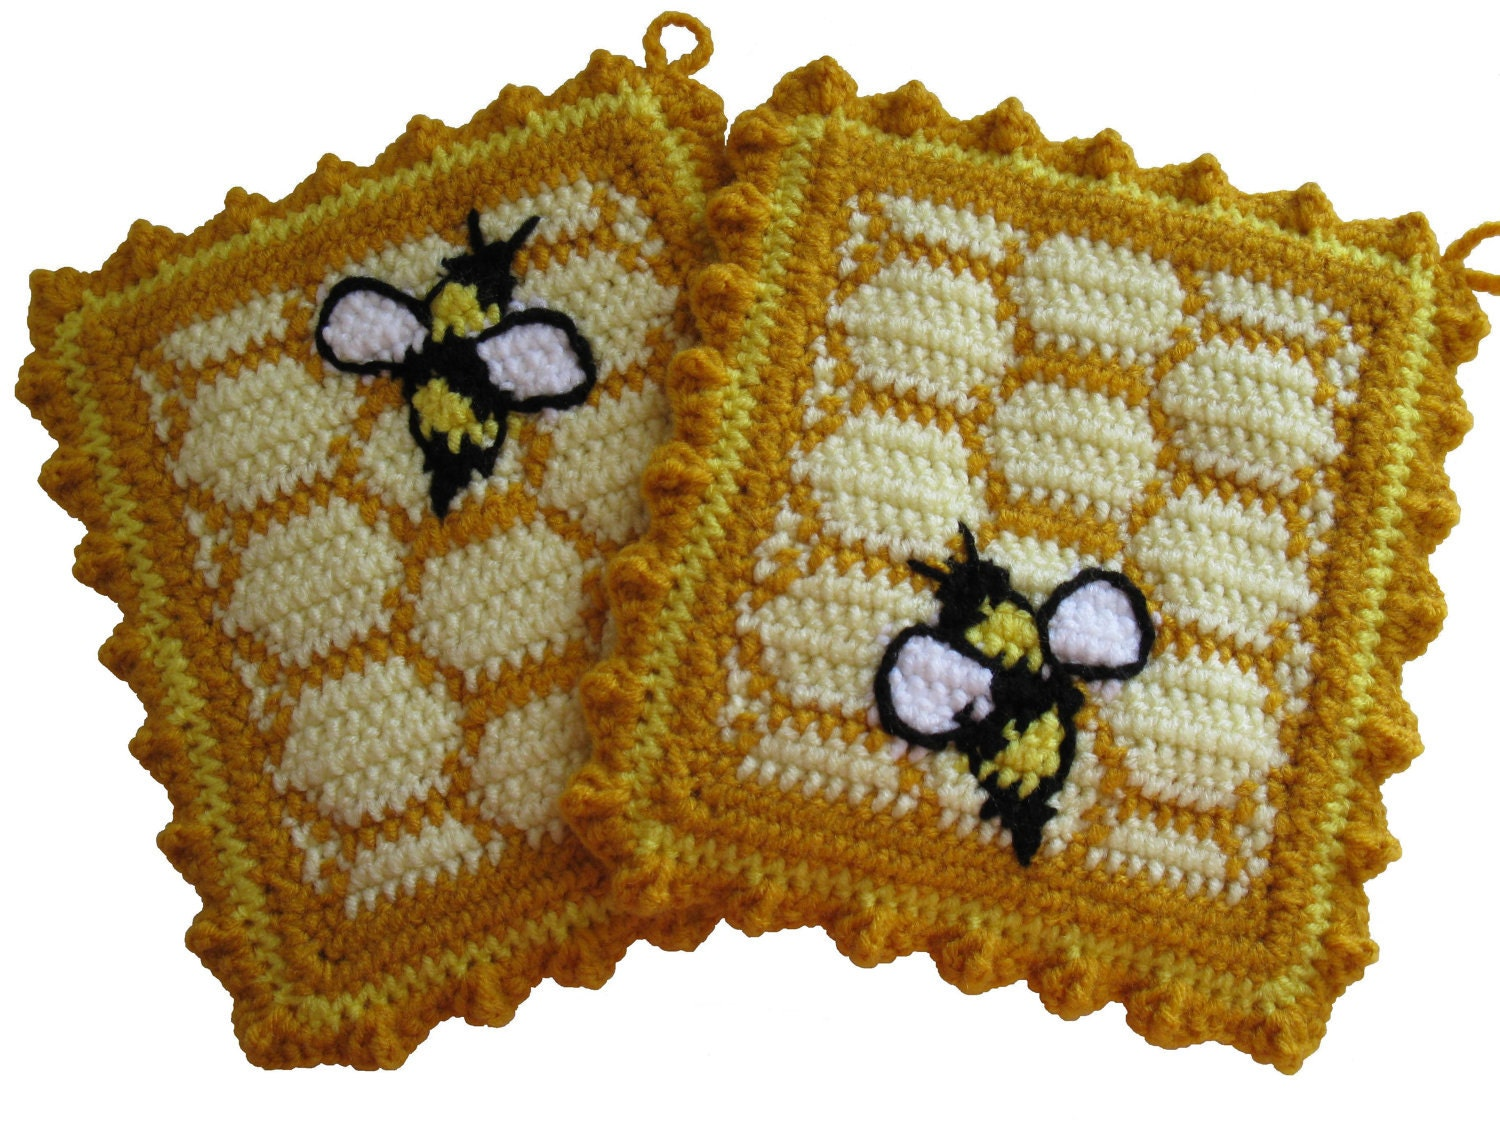 Beehive Knitting Wool Holder : Honeycomb pot holders with honey bees crochet bumblebee